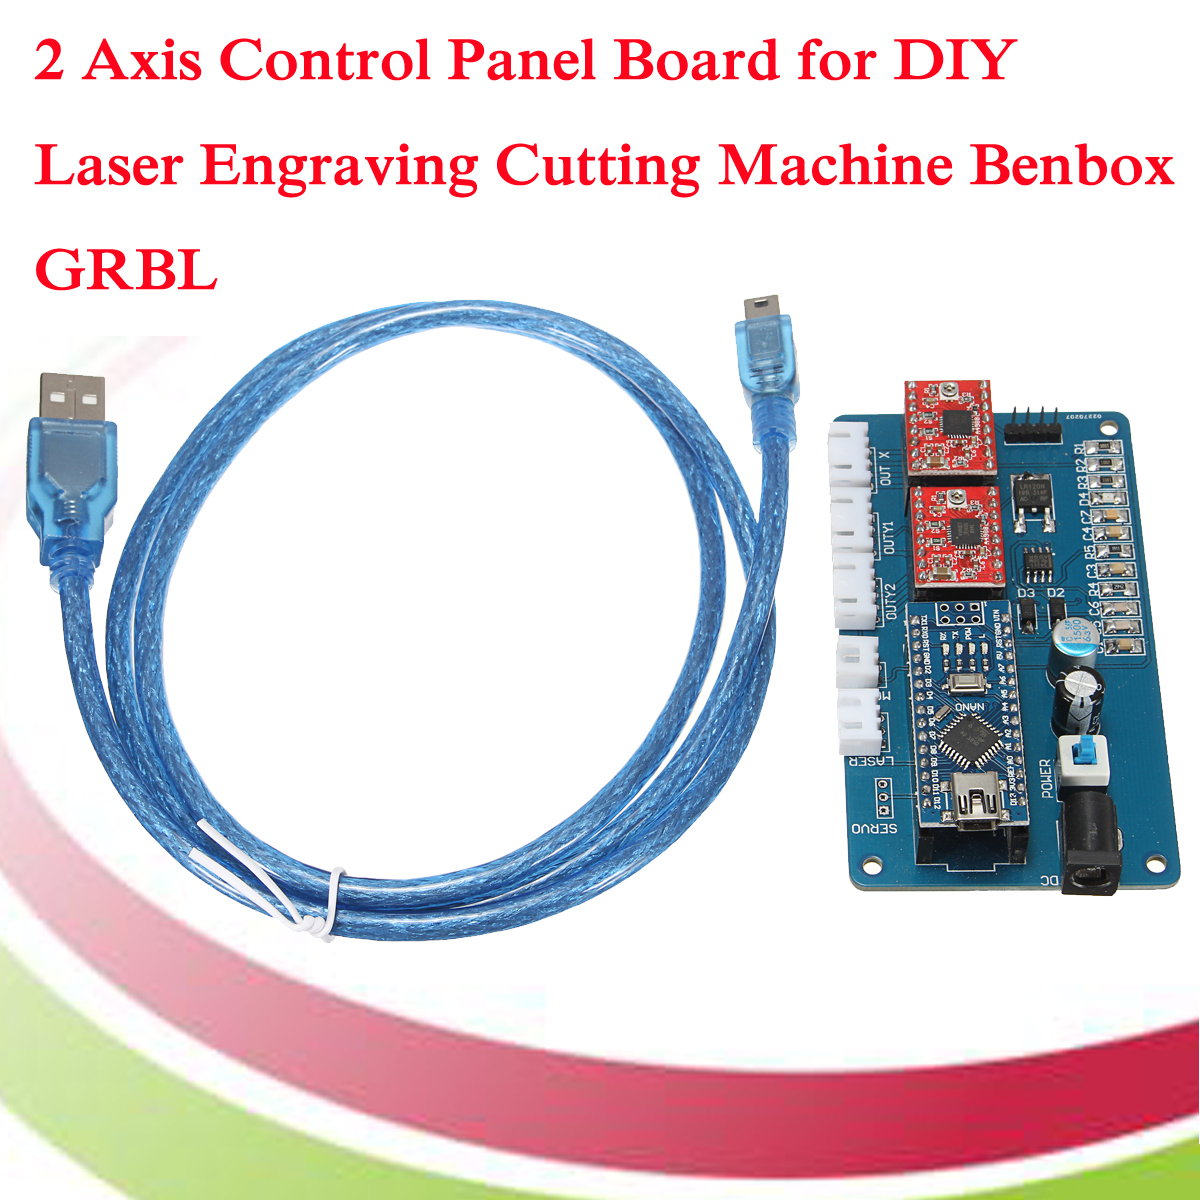 2 Axis GRBL Control Panel Board For DIY Laser Engraving Machine Benbox USB Stepper Driver Board